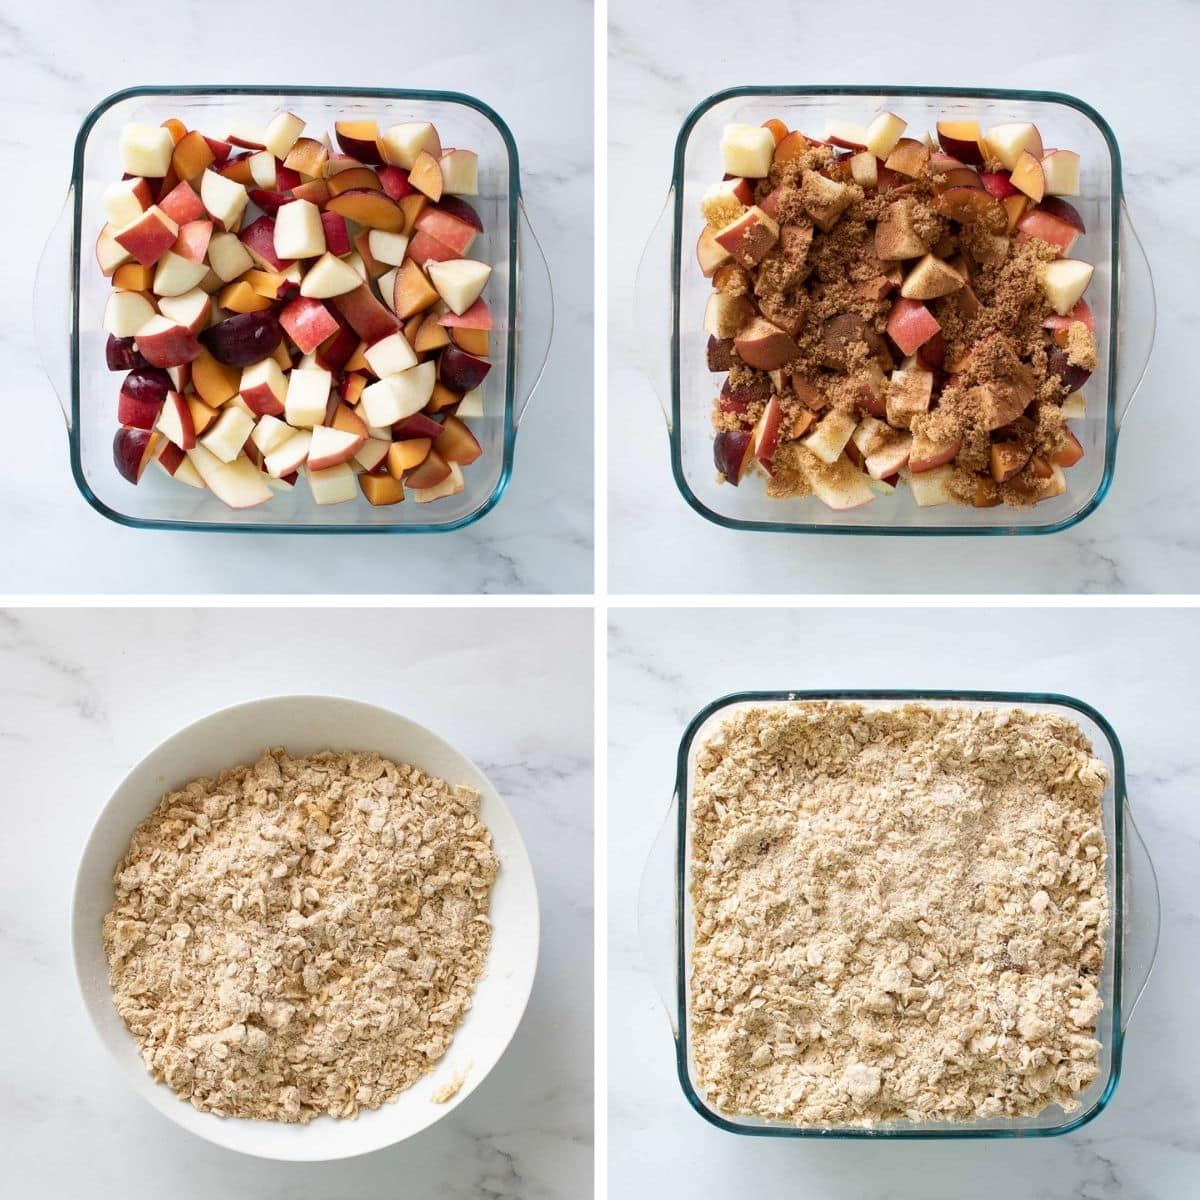 Step by step images showing how to make apple and plum crumble.